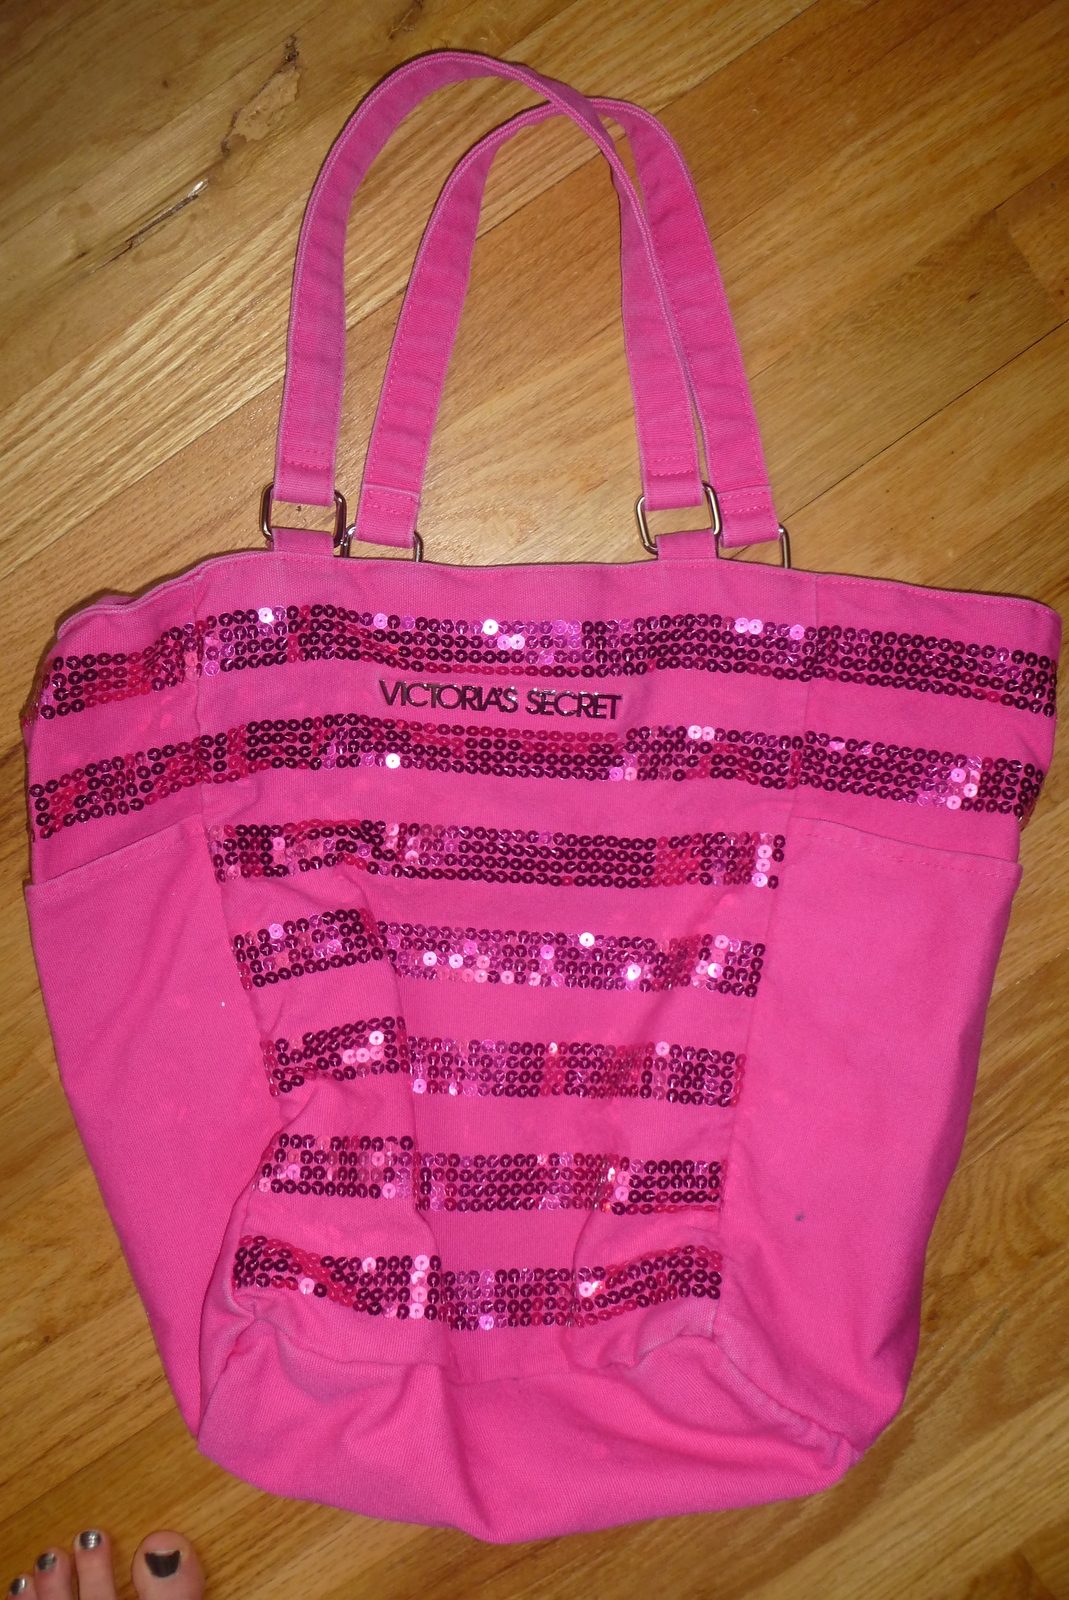 How To Make A Book Cover Out Of A Victoria S Secret Bag : P